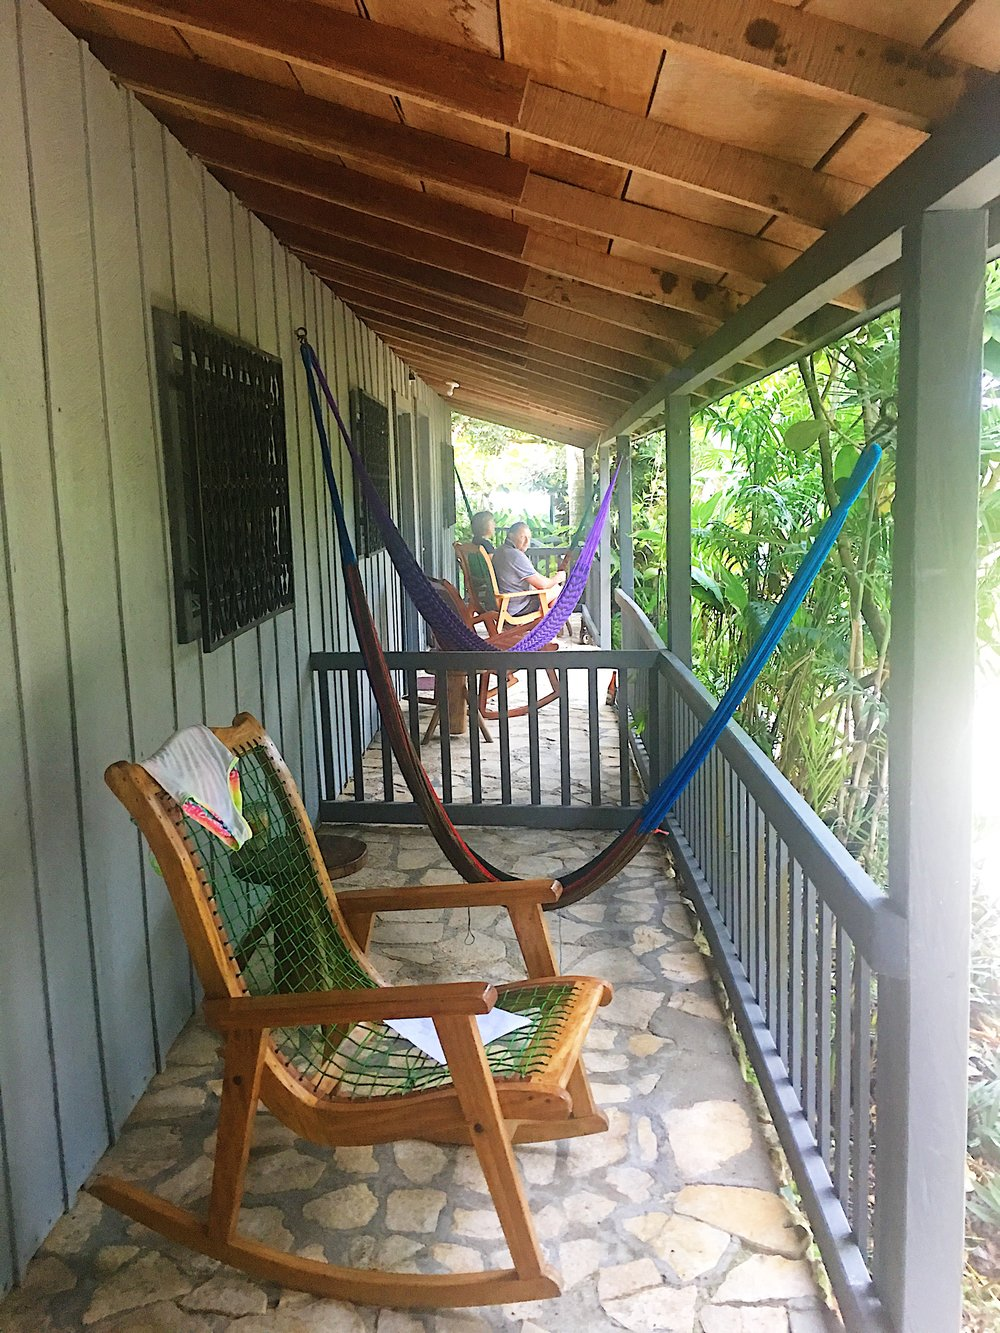 A hammock and rocking chairs sit on the porches outside of the rooms.